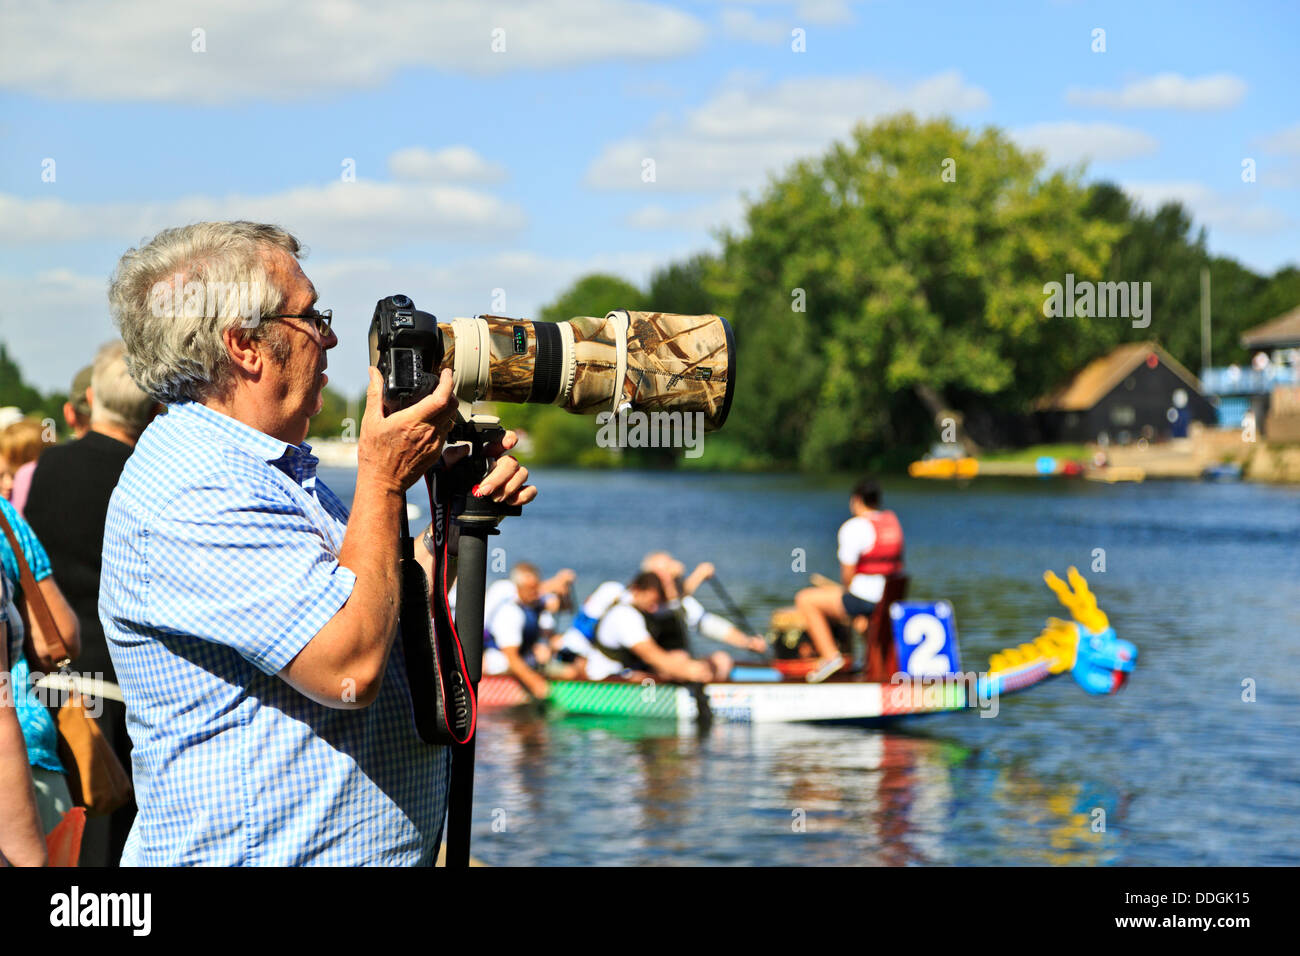 Professional photographer with a Canon camera and a big telephoto lens on a monopod - Stock Image